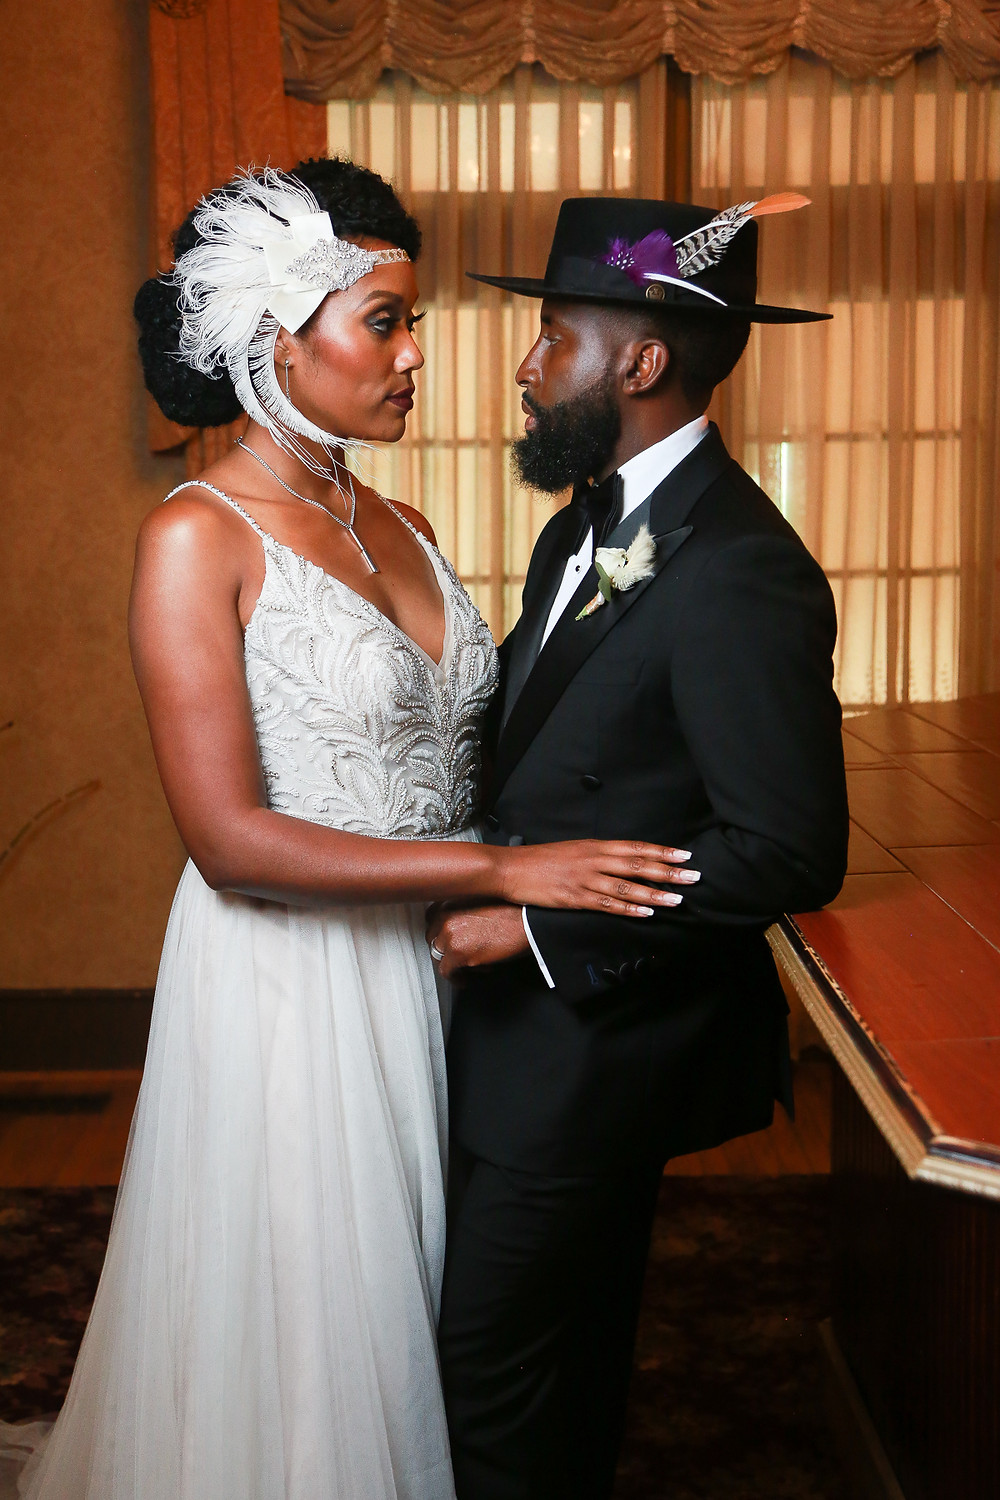 A black couple in 20's inspired wedding attire. The bride wears her hair in an updo with a white feather headpiece, a silver necklace, and a spaghetti-strapped v-neck white A-line dress with feathery embellishments on the bodice. The groom has a beard and wears a classic black tuxedo with a black bowtie, a boutonniere, a black rimmed hat with feathers. The groom (right) leans against the bar and is facing the bride, who faces him as they both stare into each other's eyes. She is touching his left arm with her right hand.